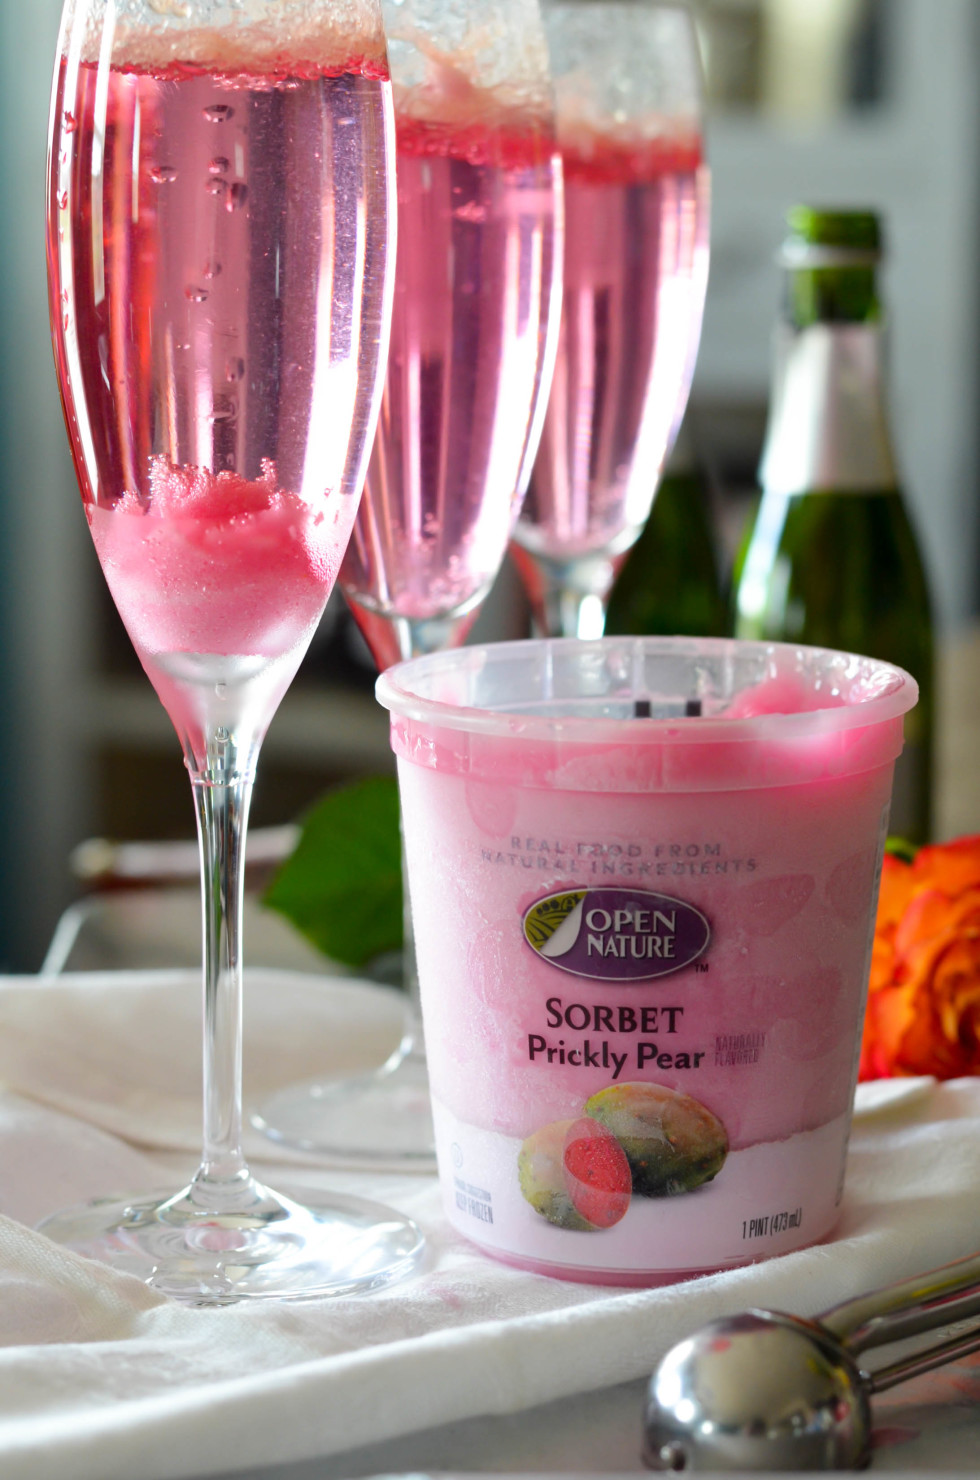 Open Nature Prickly Pear Sorbet Champagne Cocktail // Karista's Kitchen